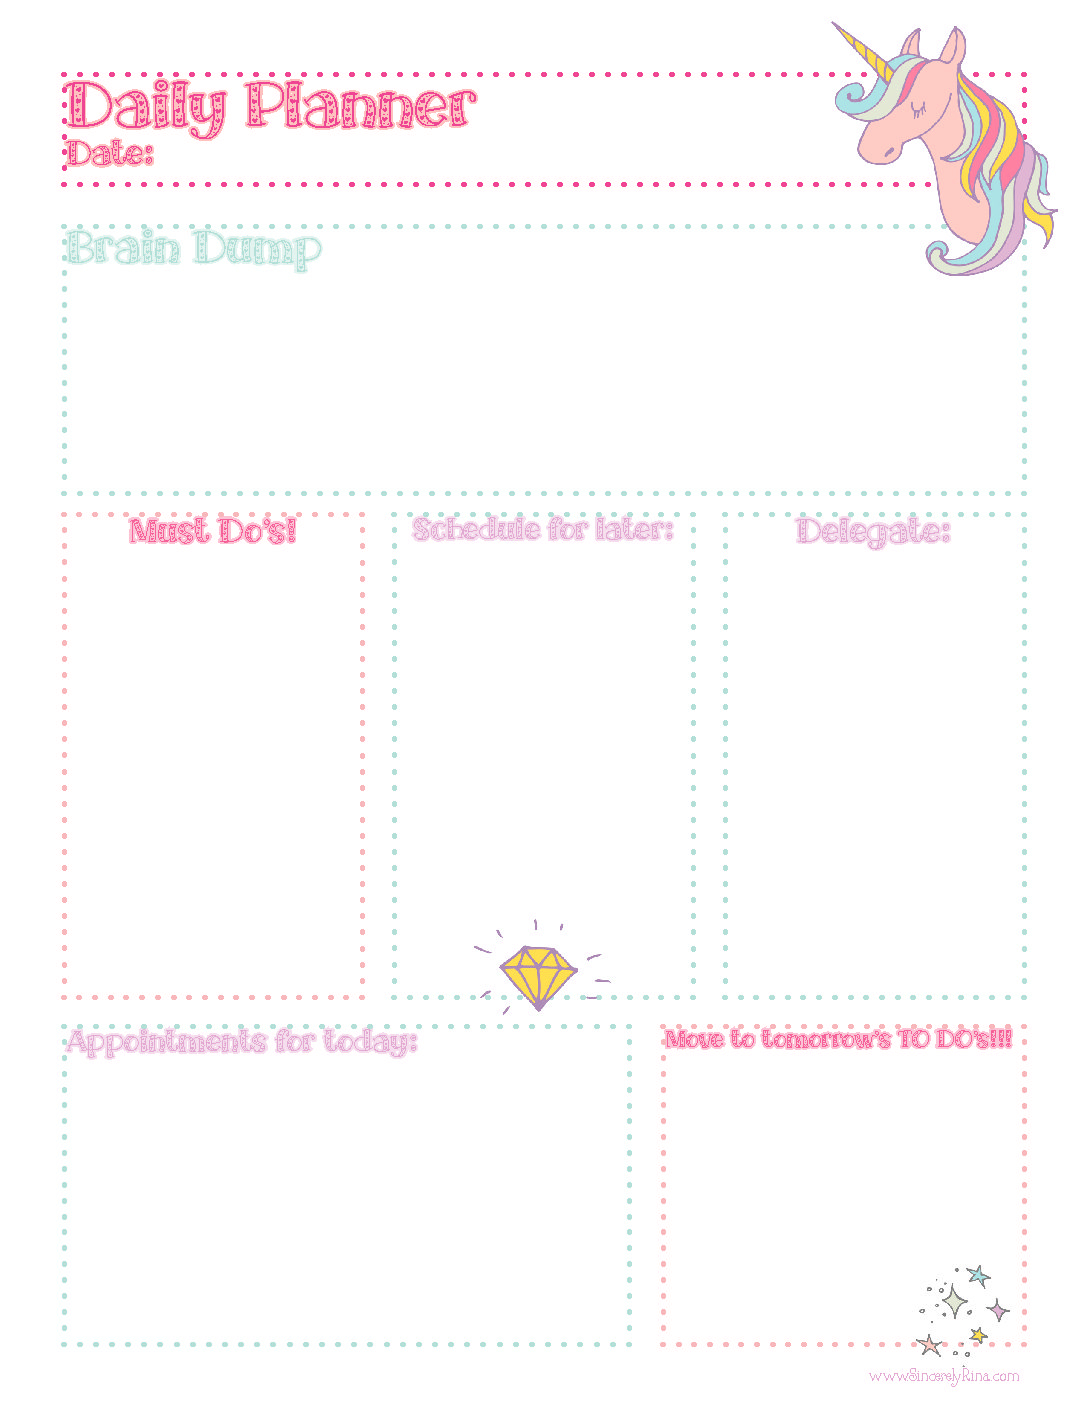 Unicorn Daily Planner Sheet: Free Printable – Sincerely Rina regarding Daily Planner Templates Pretty